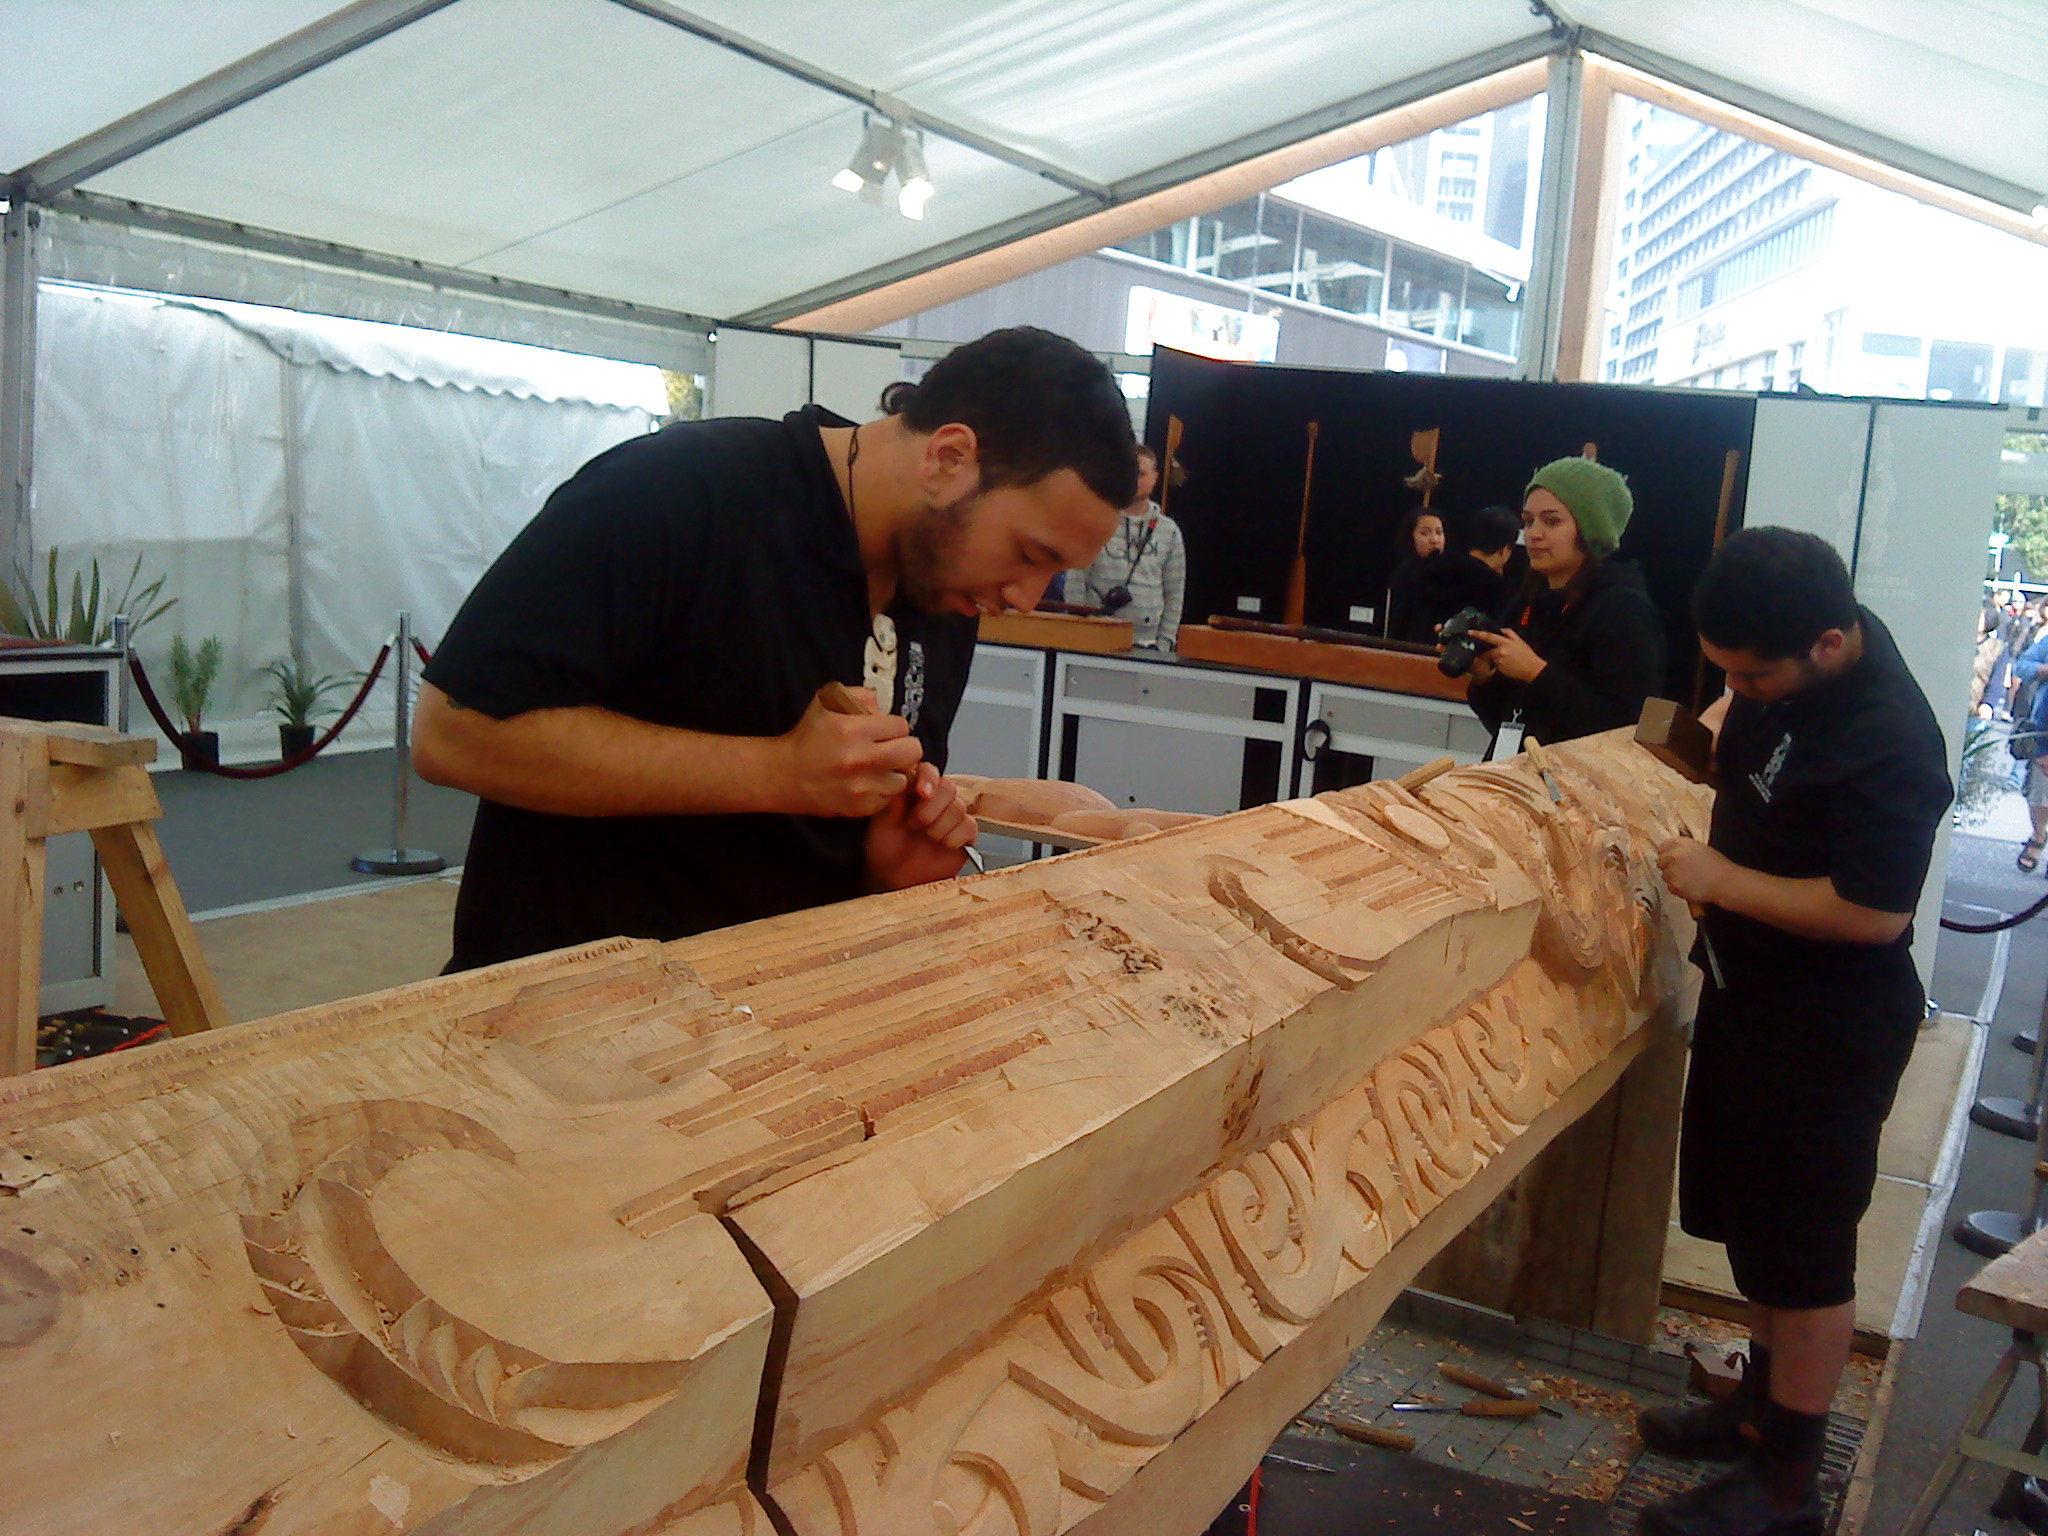 Pou being carved at the Viaduct during the RWC 2011 events